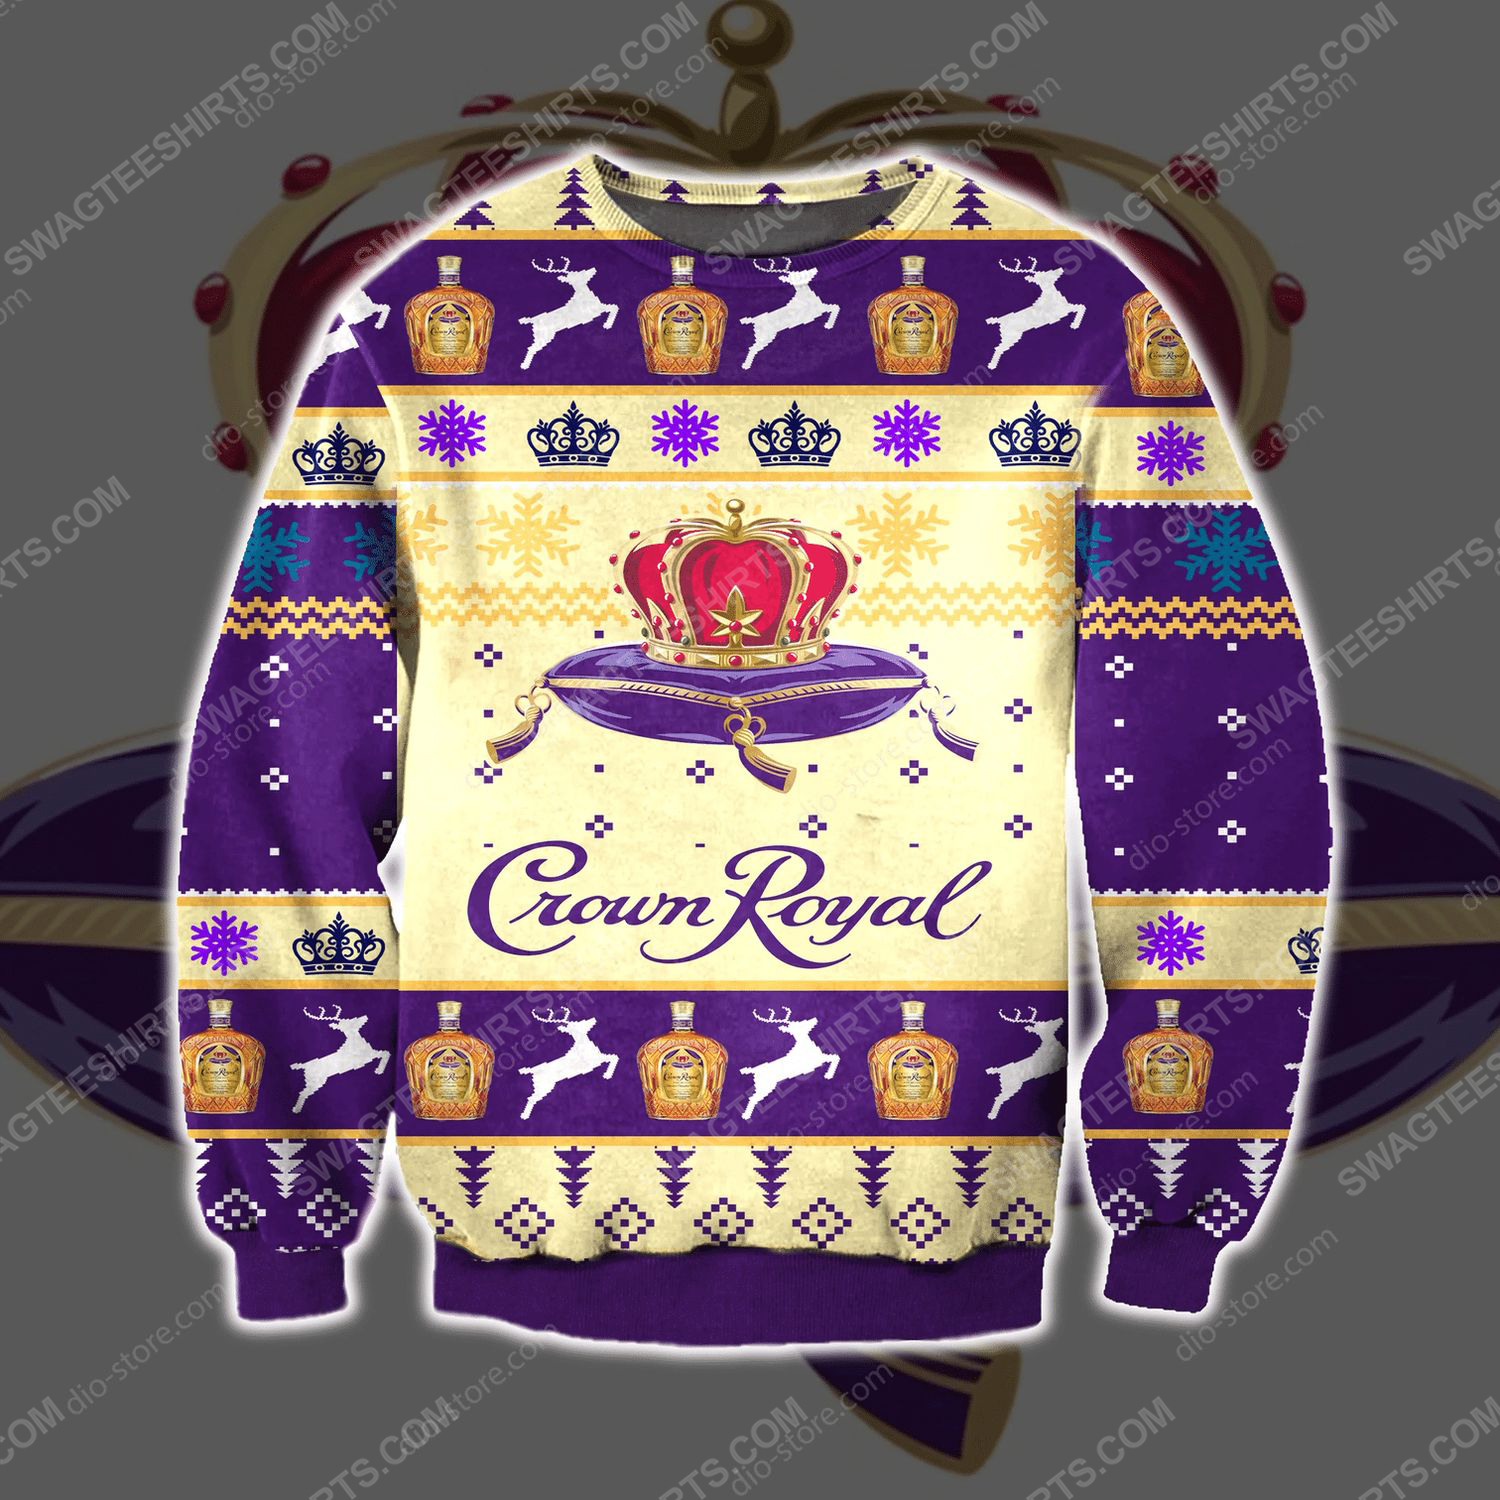 Seagram's crown royal ugly christmas sweater